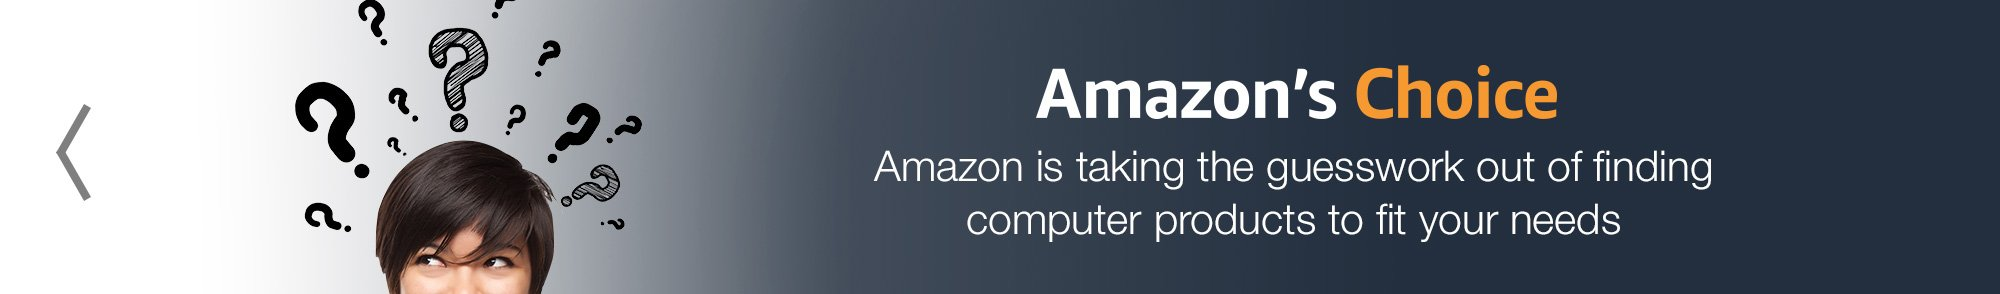 Amazon's Choice